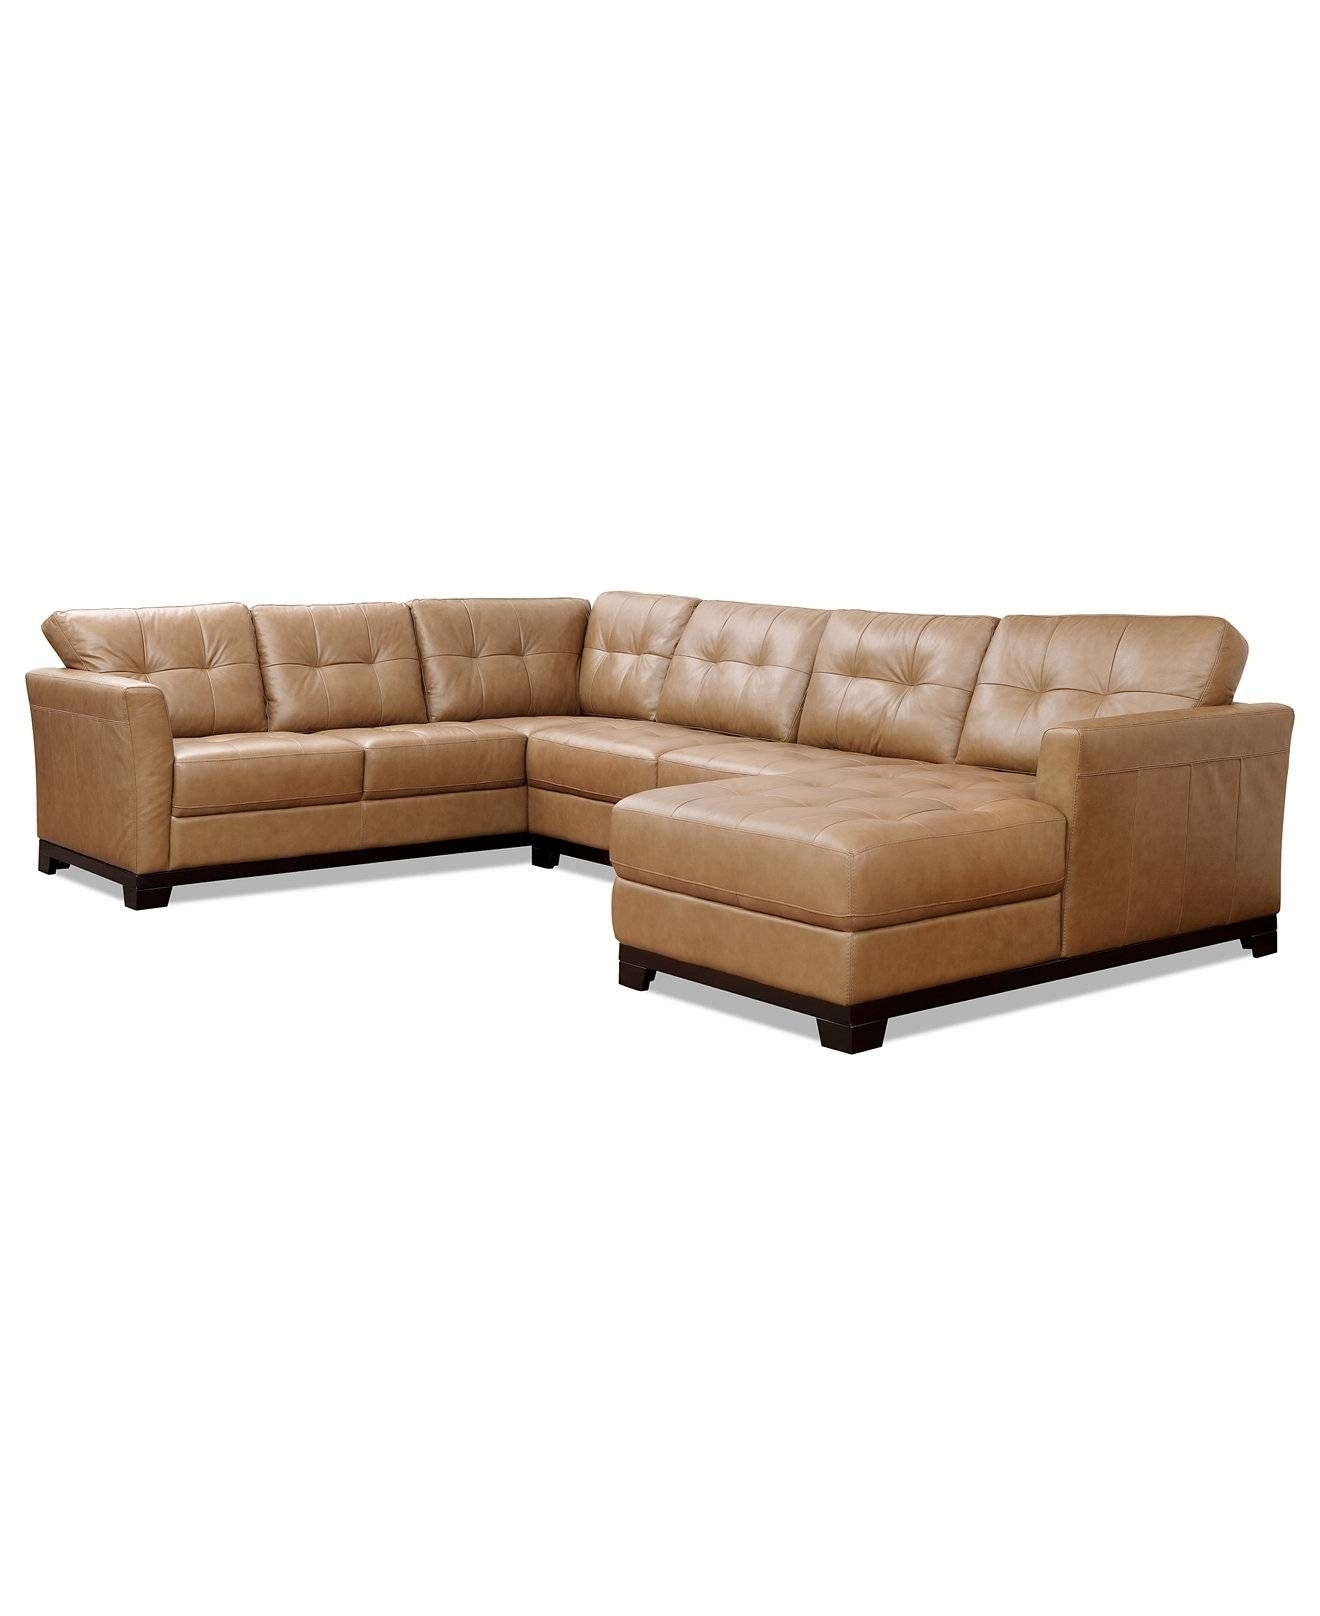 Featured Photo of Macys Leather Sectional Sofas